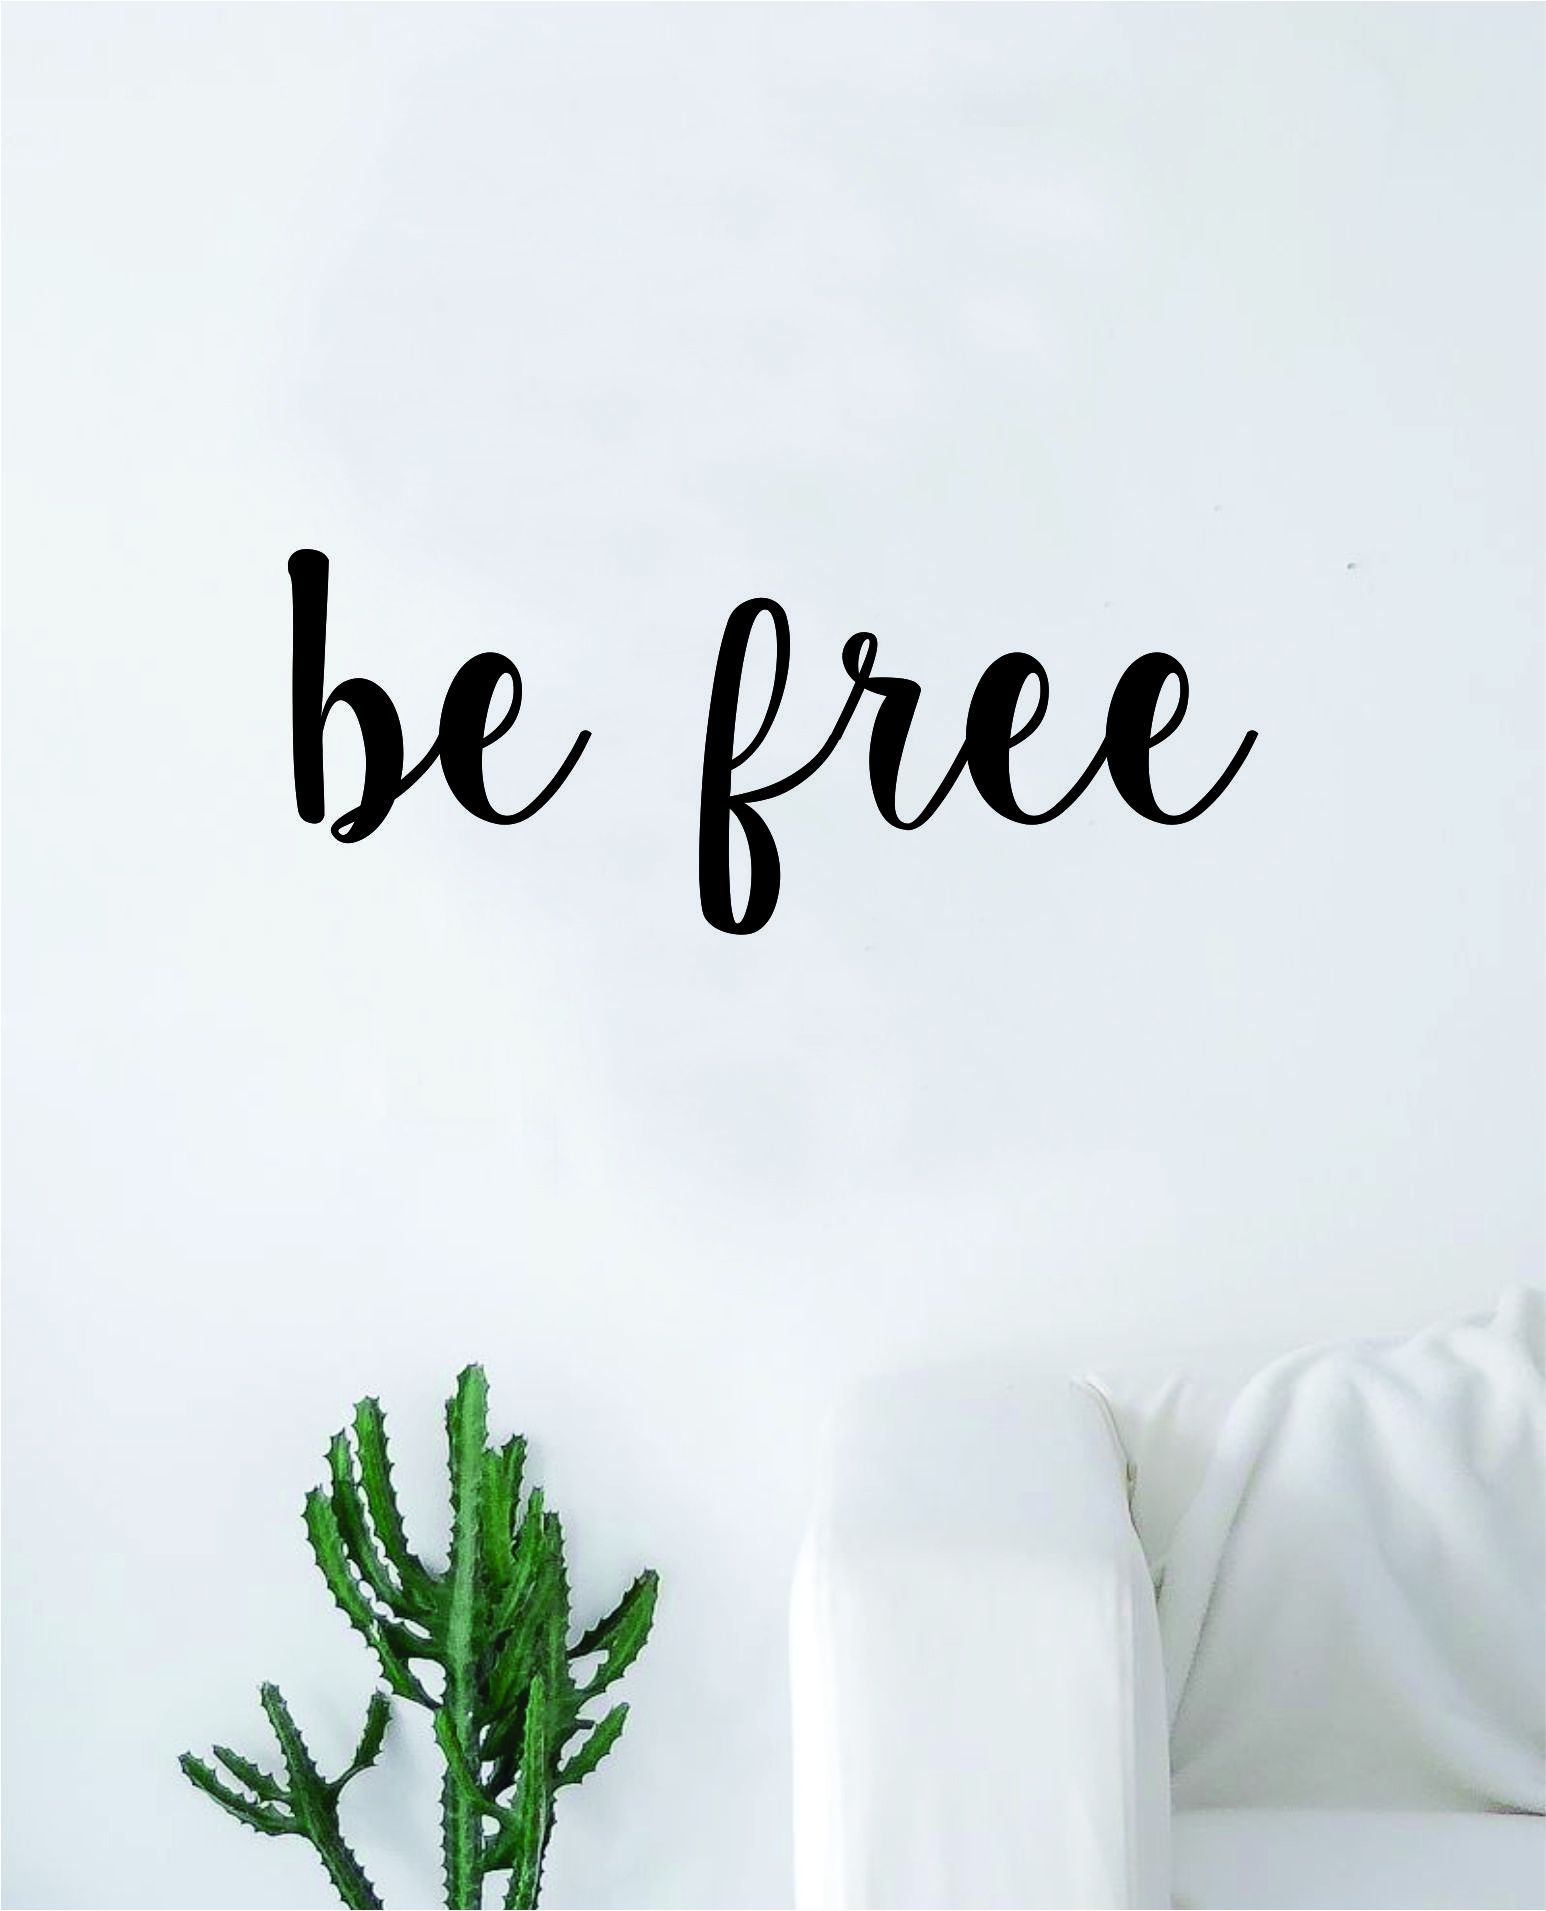 Be Free Wall Decal Sticker Vinyl Art Bedroom Living Room Decor Decoration Teen Quote Inspirational Motivational Inspiring Strong Brave Love Beautiful Yoga Namaste - yellow